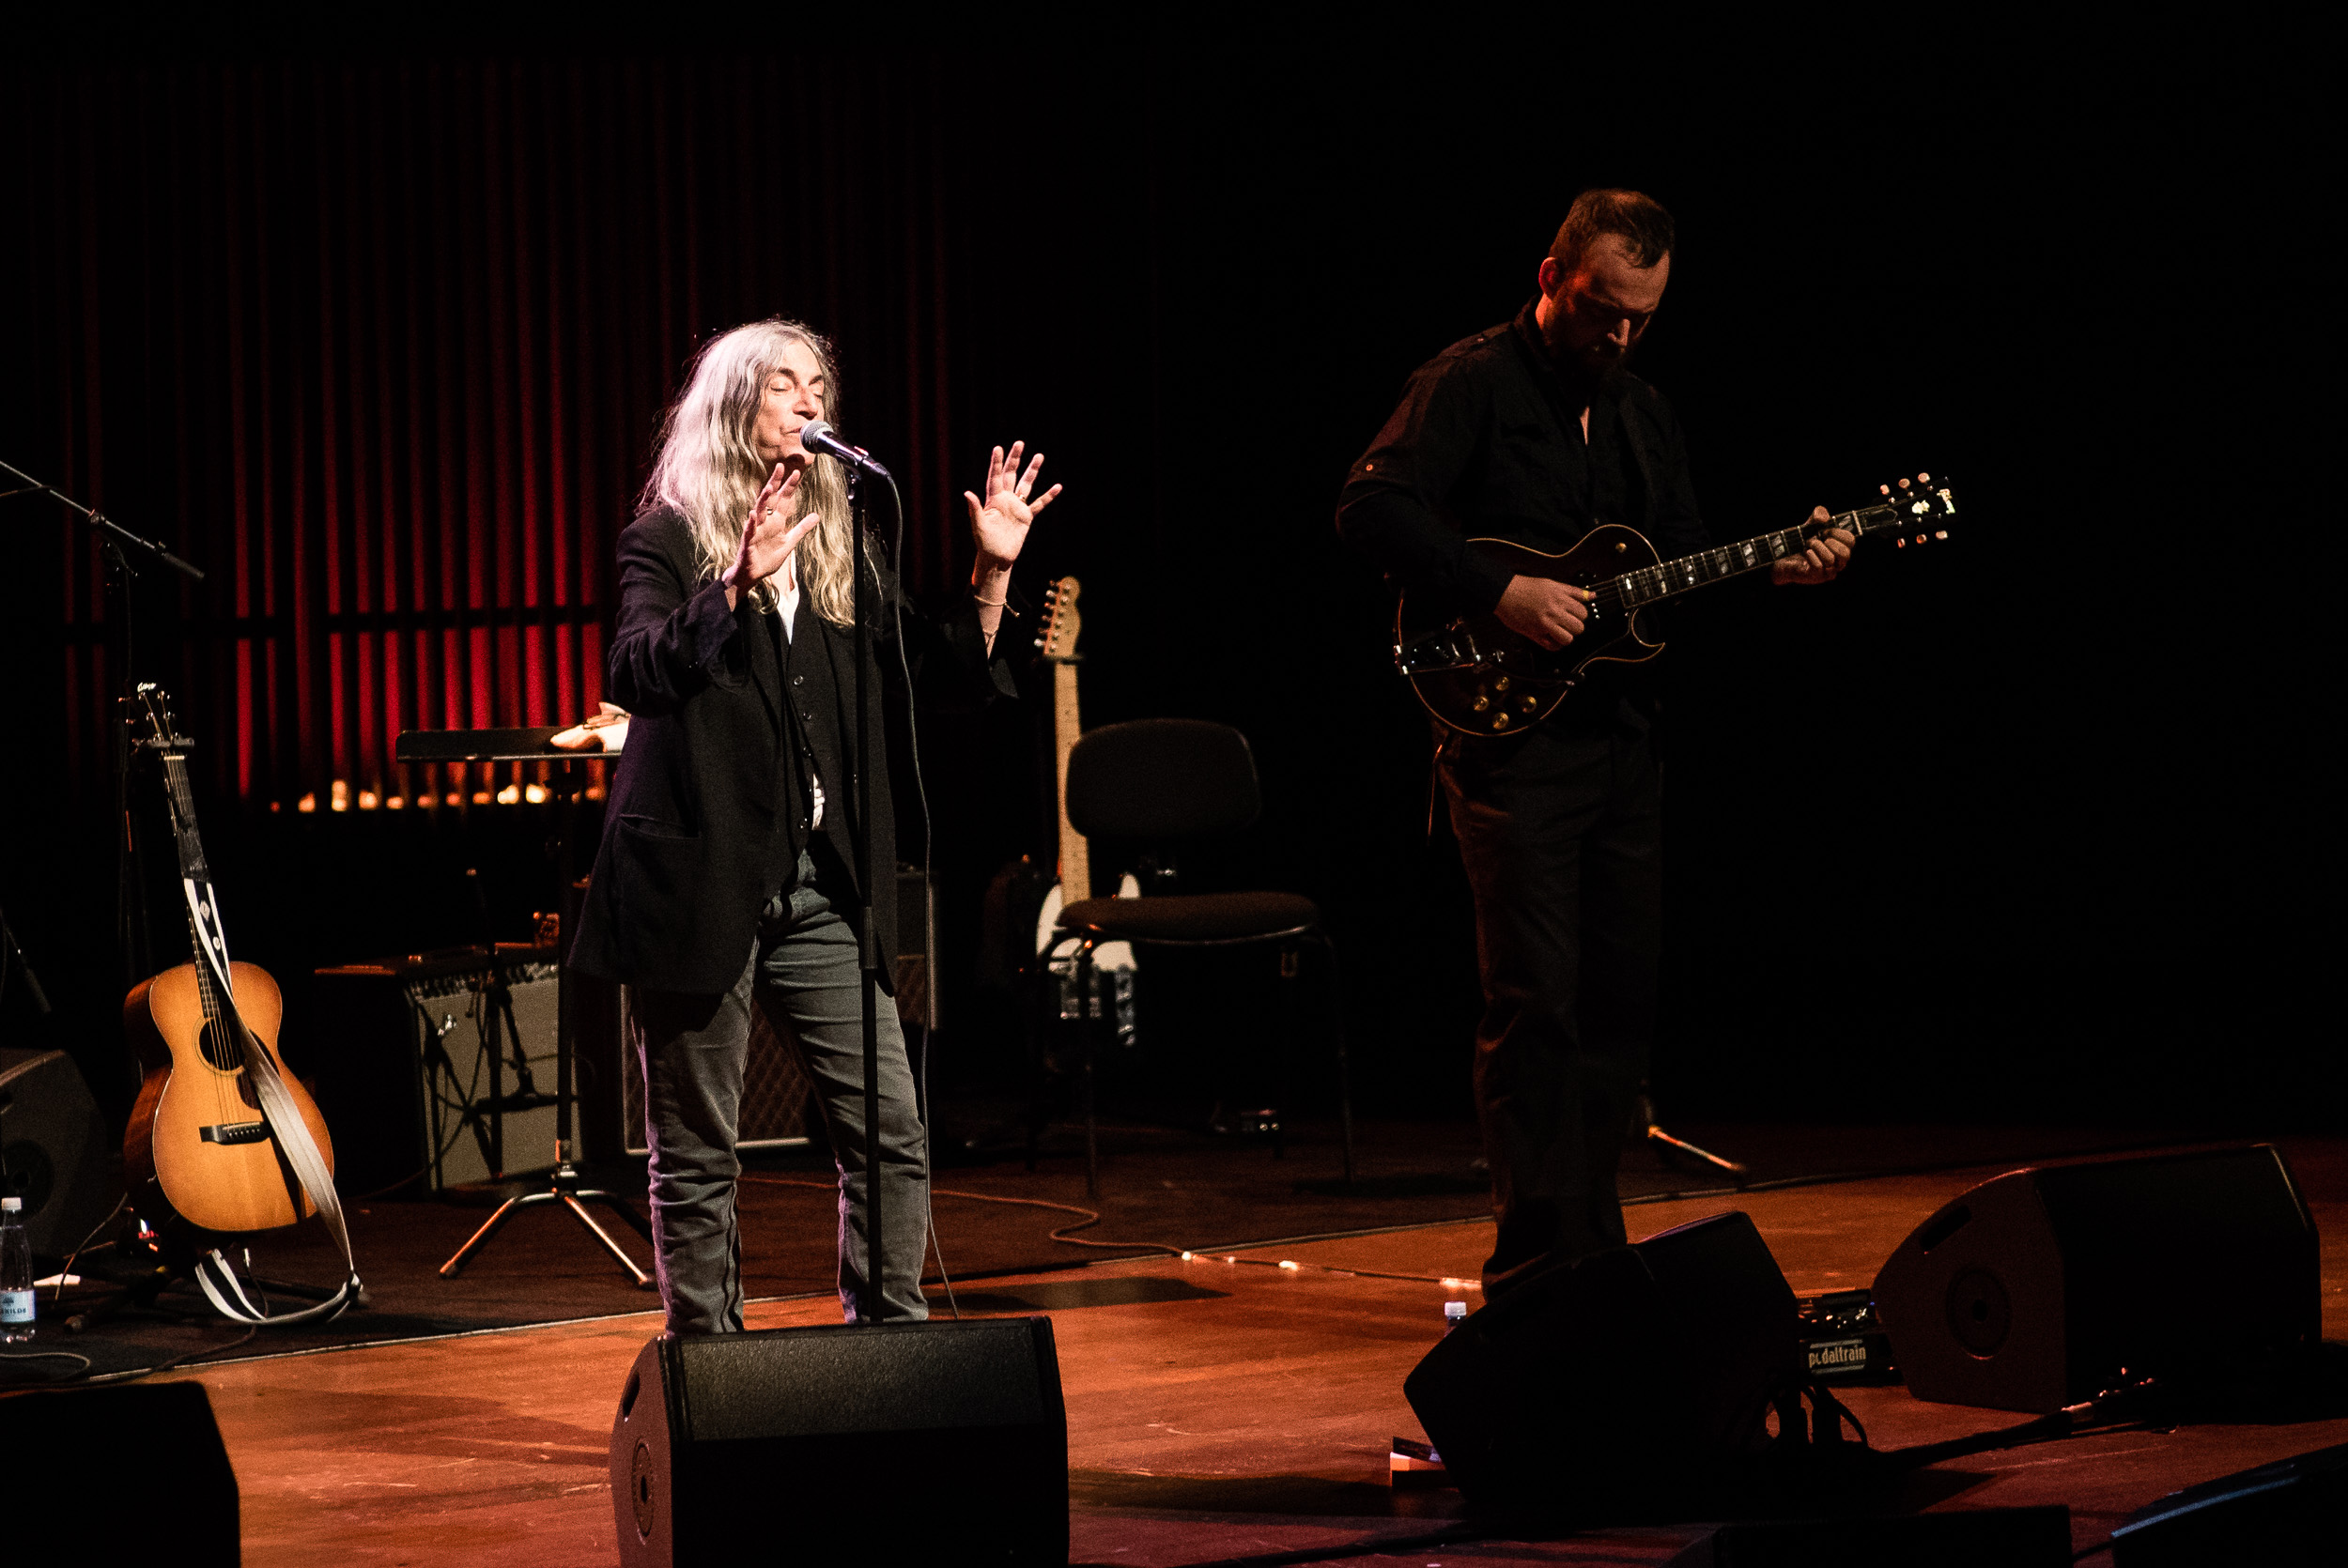 patti smith a colorful life lived in music Patti smith, along with her friend robert mapplethorpe, lived a particular new  york  their own photographs, making their own songs, and i think that's a  beautiful thing  the colored handkerchief he would fold and tuck in his back  pocket.